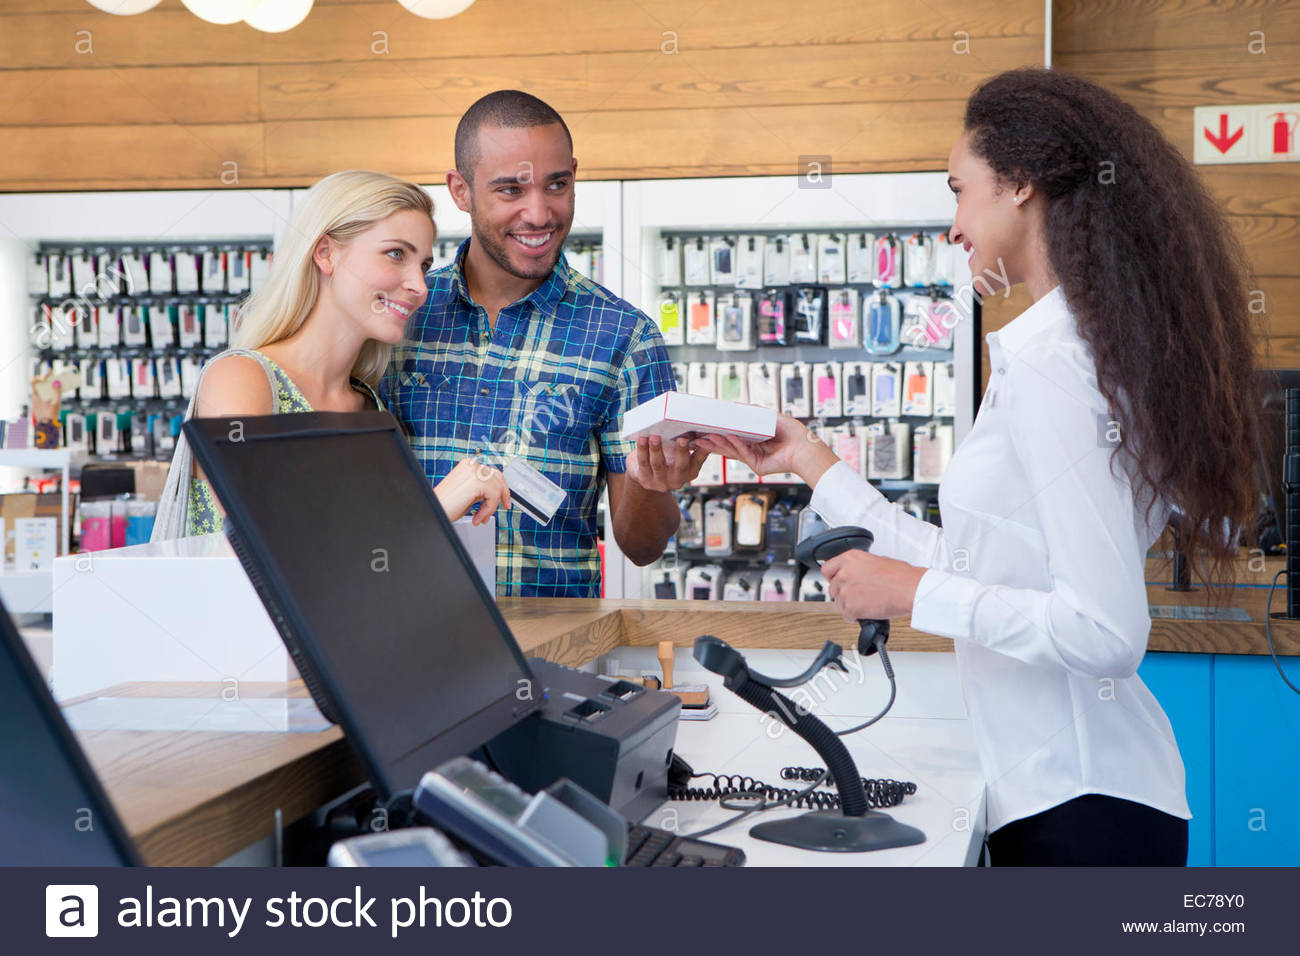 shop assistant and customer stock photos shop assistant and couple making a purchase from store assistant in shop stock image